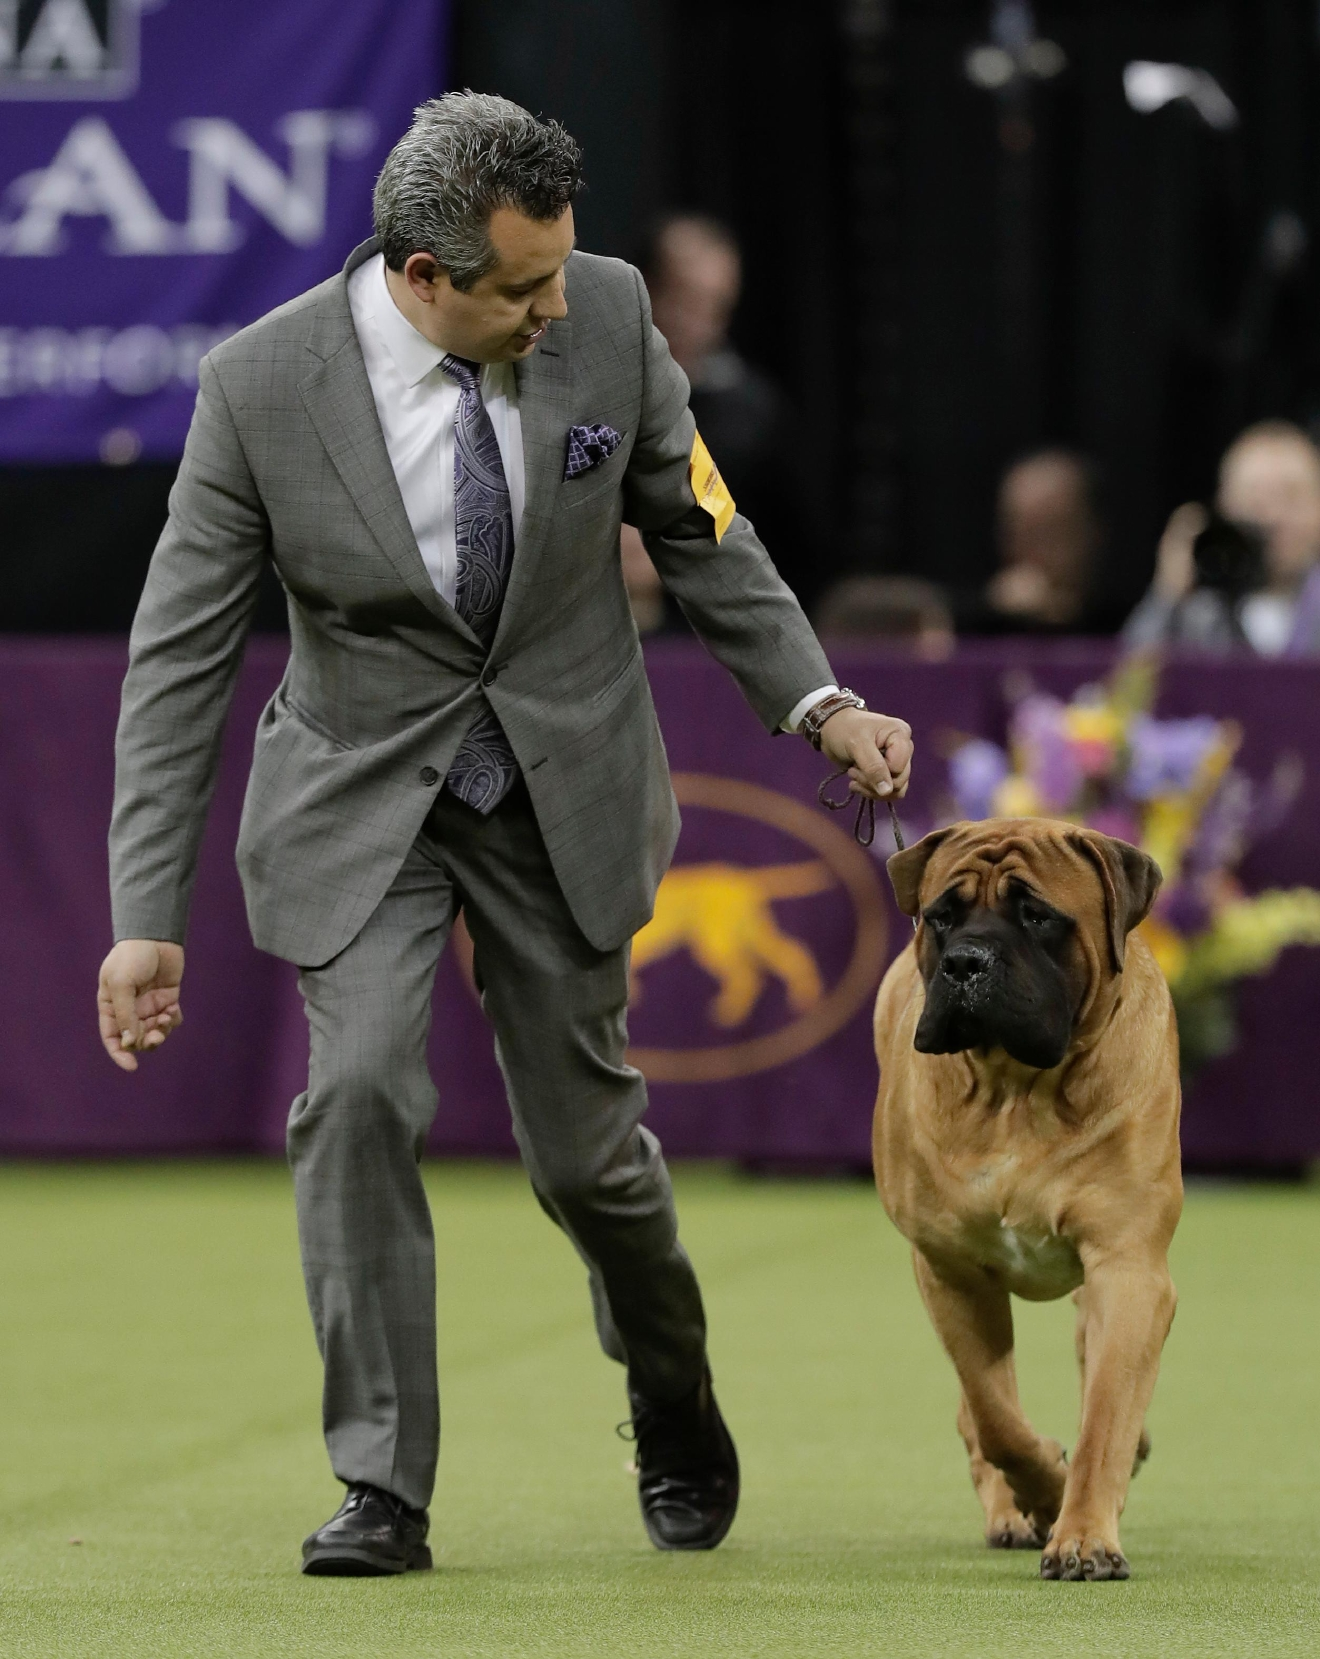 A handler guides a mastiff around the ring during the working group competition at the 141st Westminster Kennel Club Dog Show, Tuesday, Feb. 14, 2017, in New York. (AP Photo/Julie Jacobson)